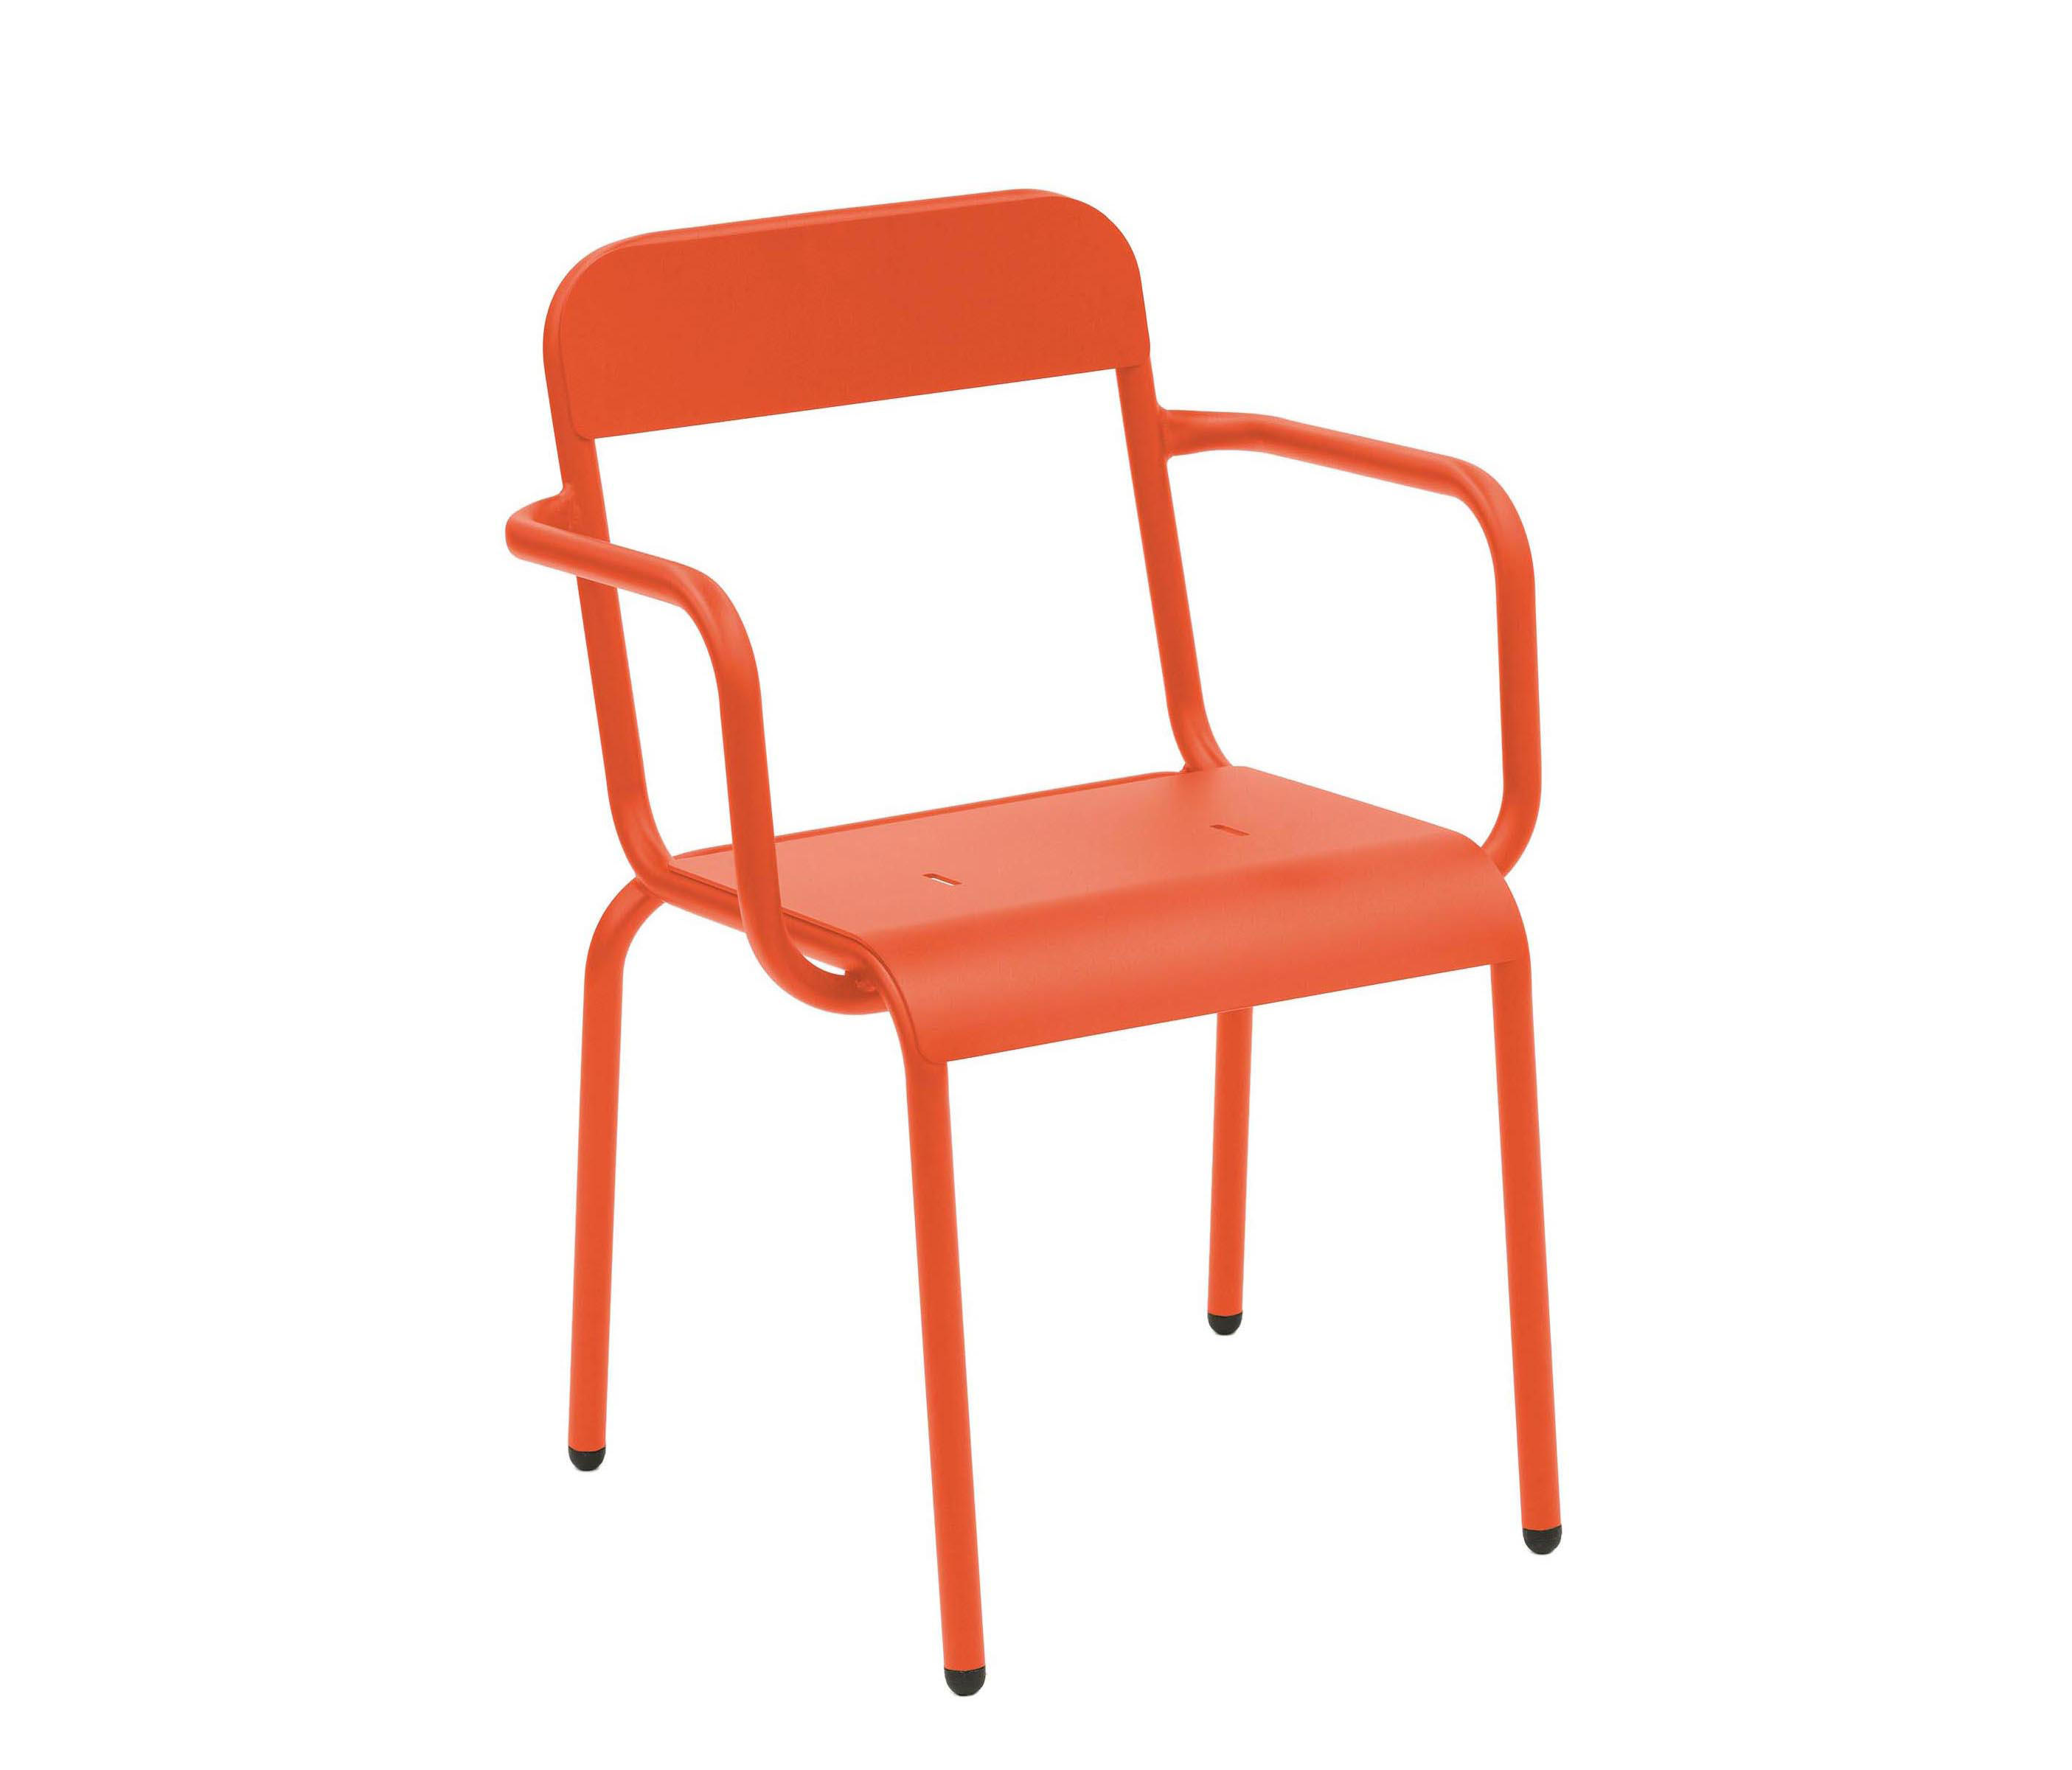 Rimini Armchair Mobilier Design Architonic